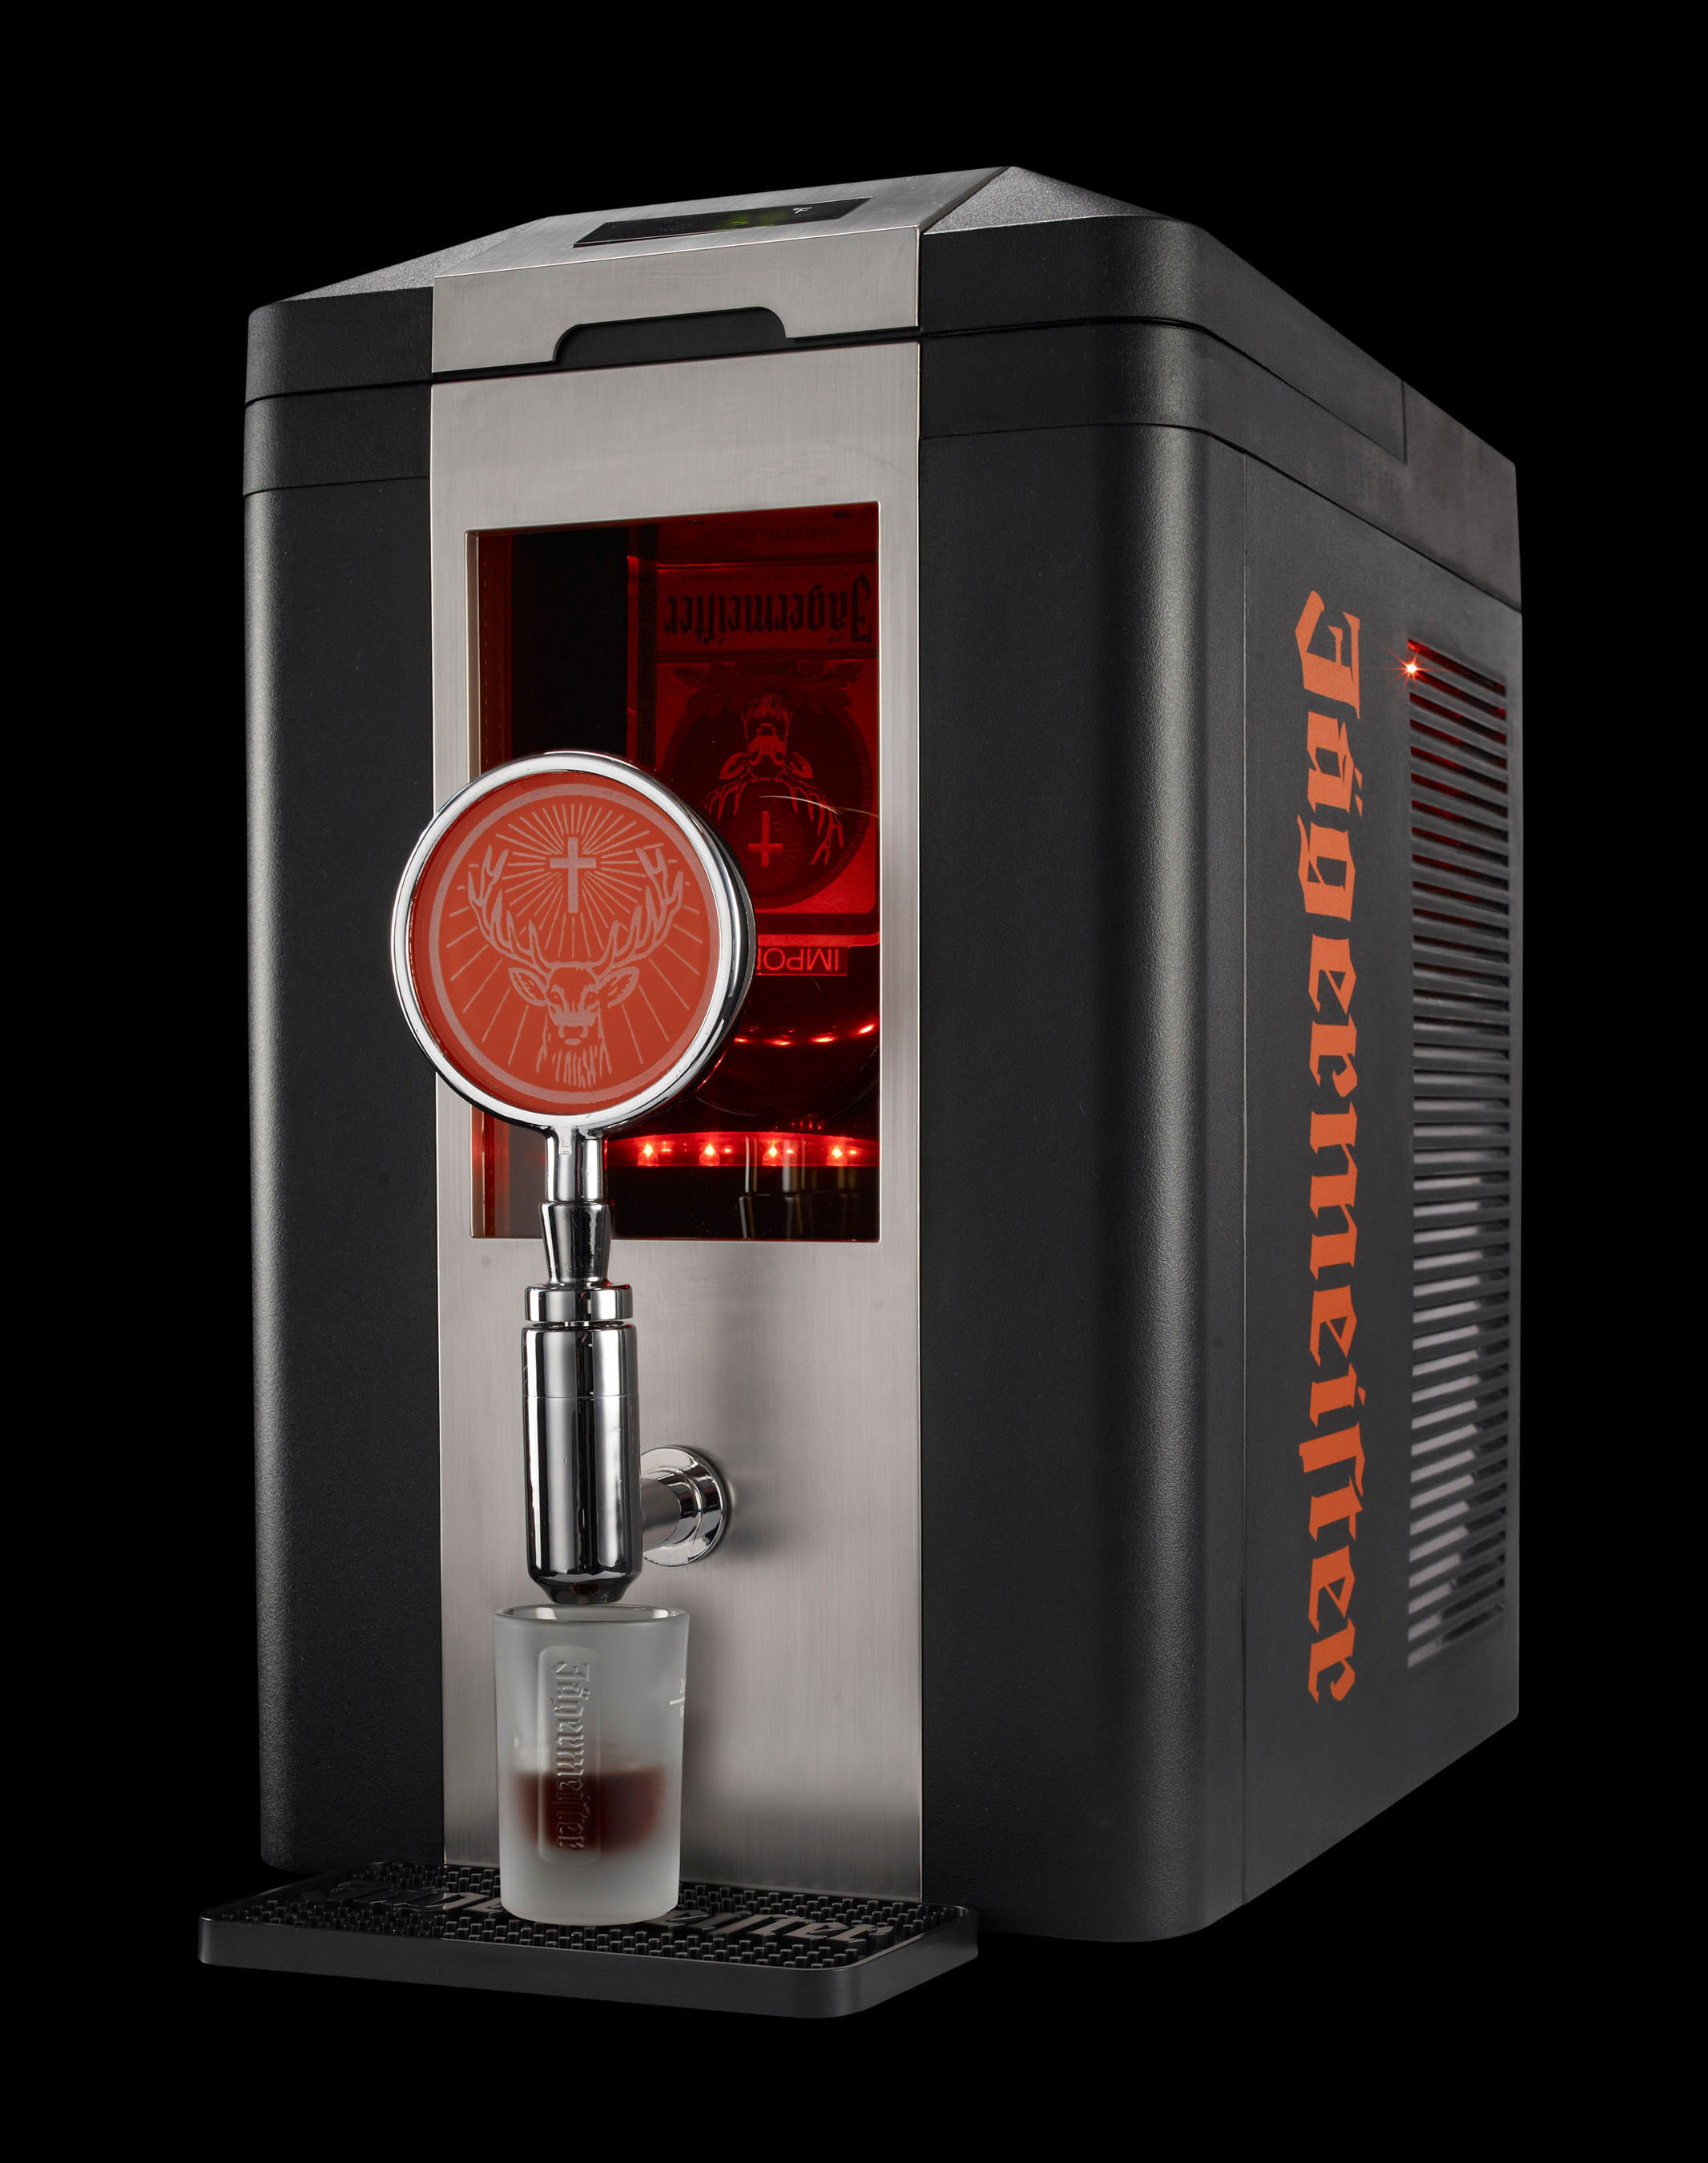 Introducing The Jagermeister Shotmeister. (PRNewsFoto/Jagermeister) (PRNewsFoto/JAGERMEISTER)